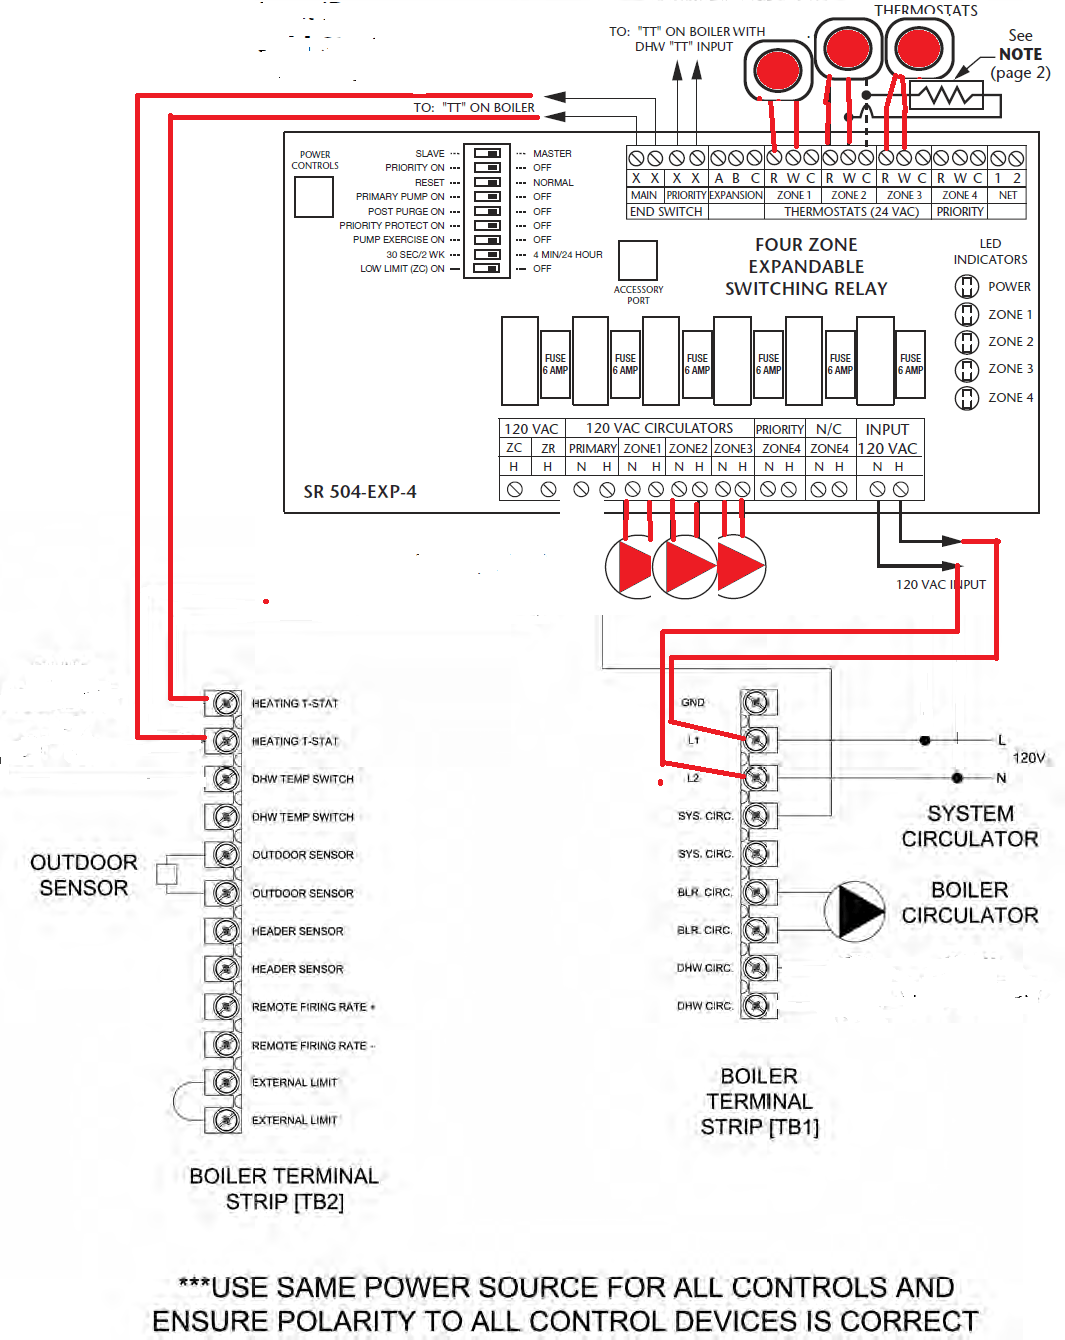 Taco 111 Wiring Diagram Auto Electrical Wiring Diagram Aquastat Wiring-Diagram  Taco 111 Wiring Diagram